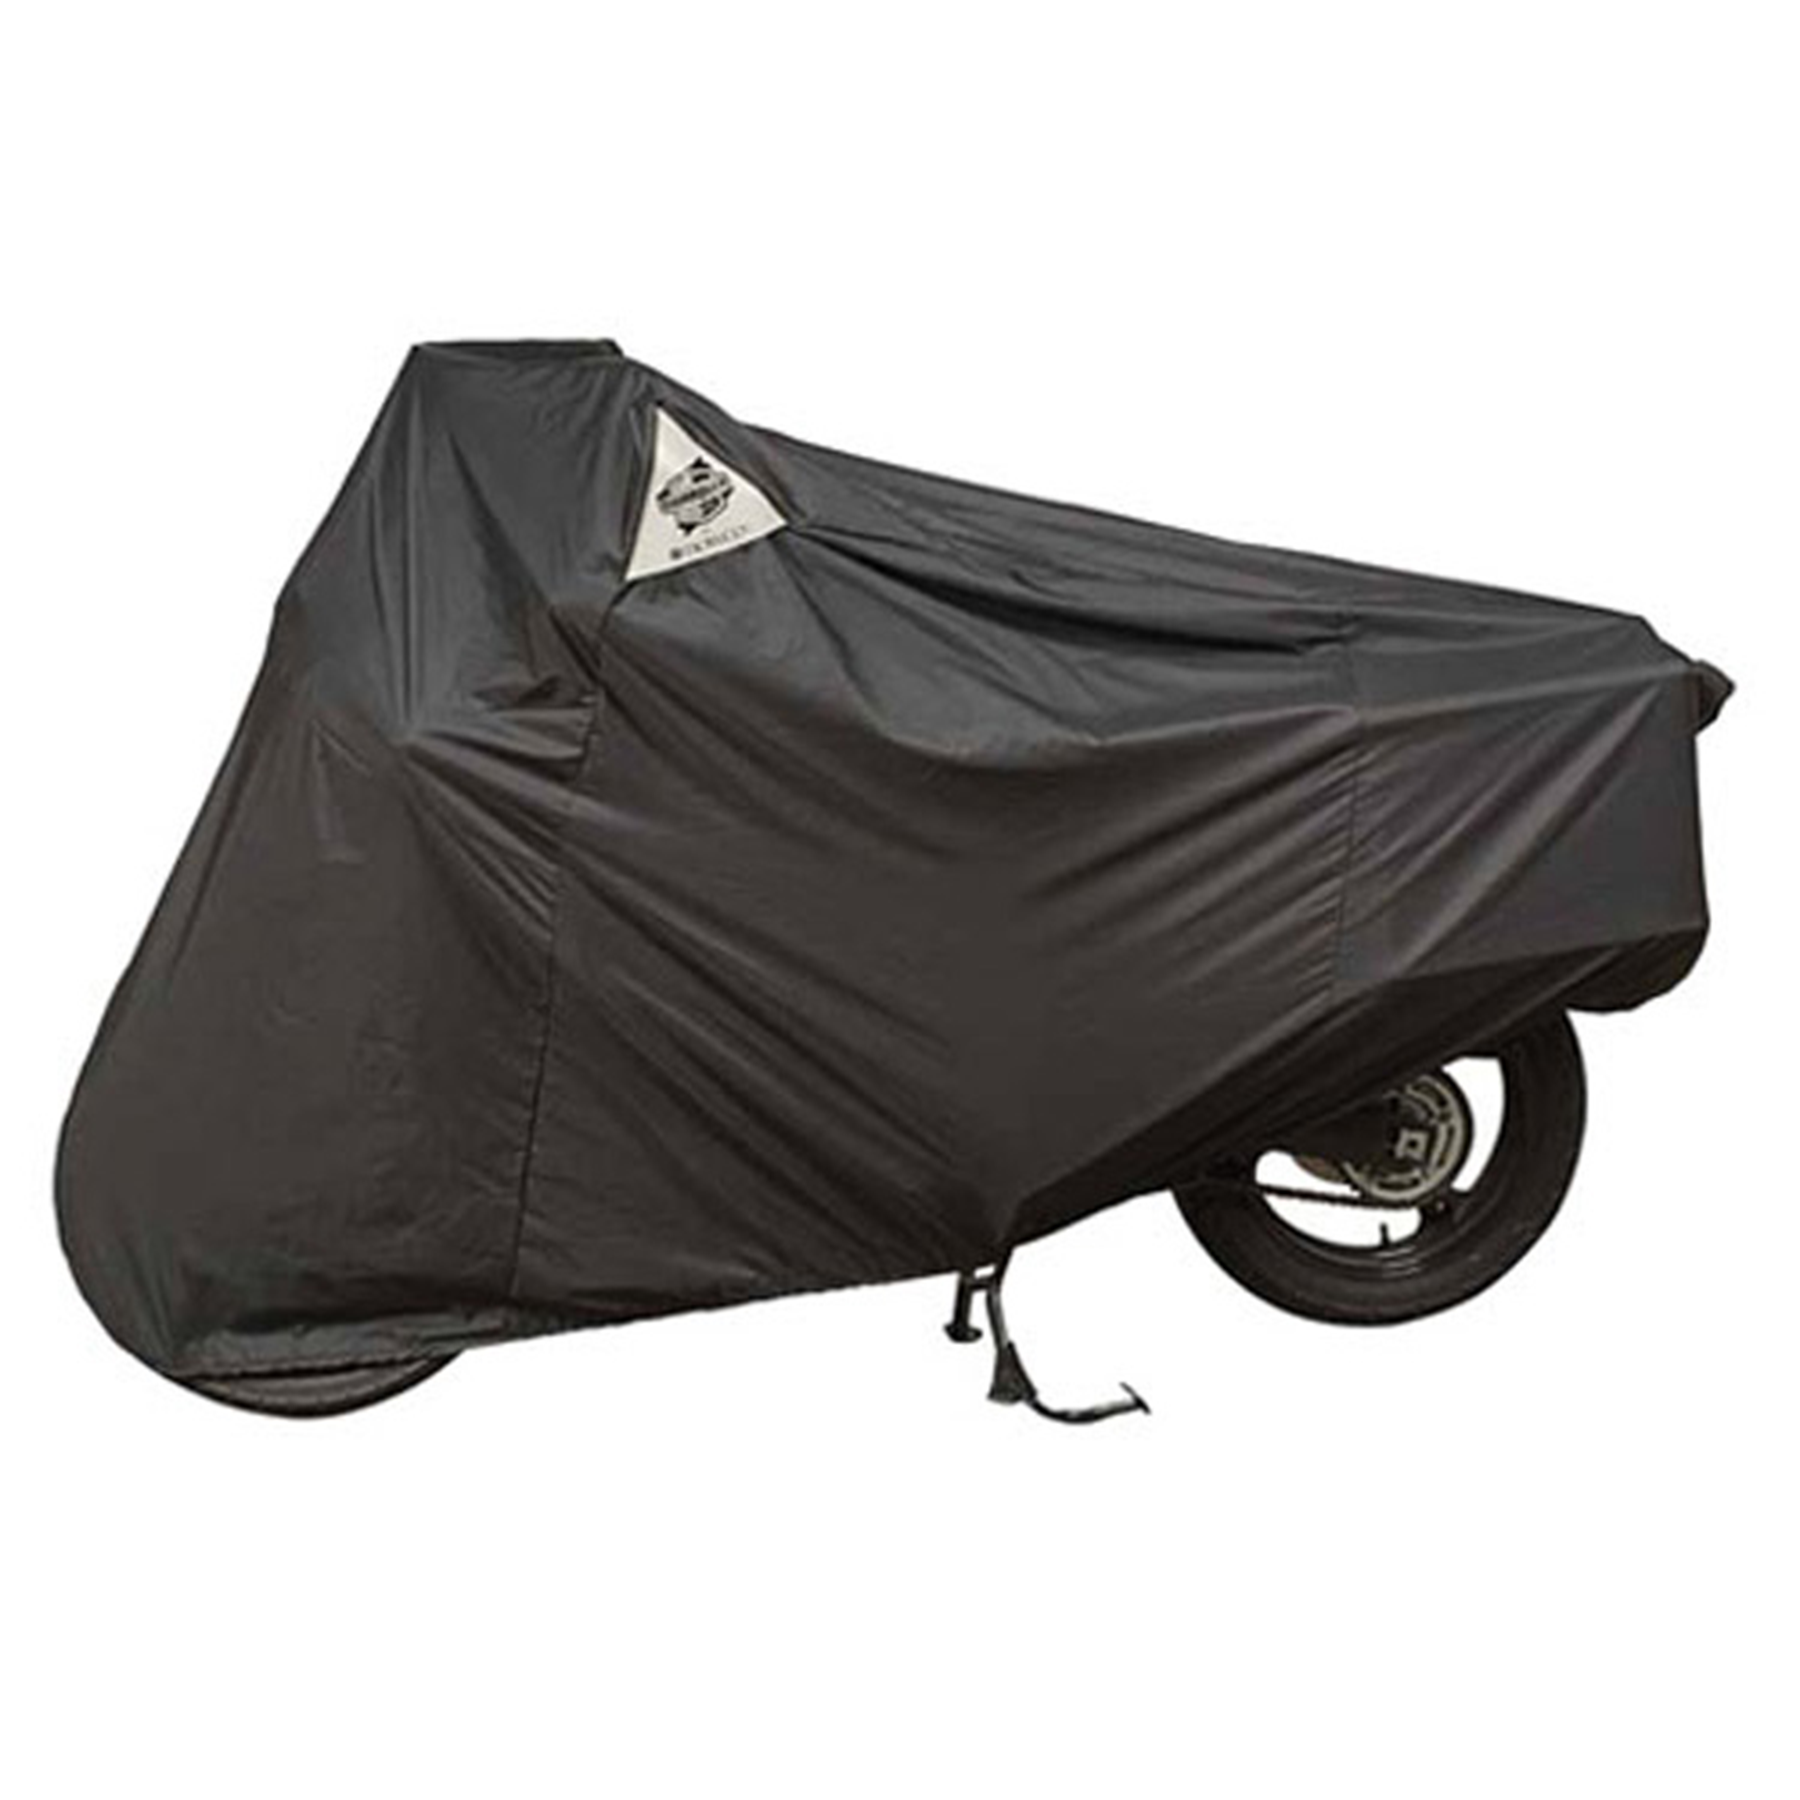 GUARDIAN WEATHERALL PLUS MOTORCYCLE COVER AT